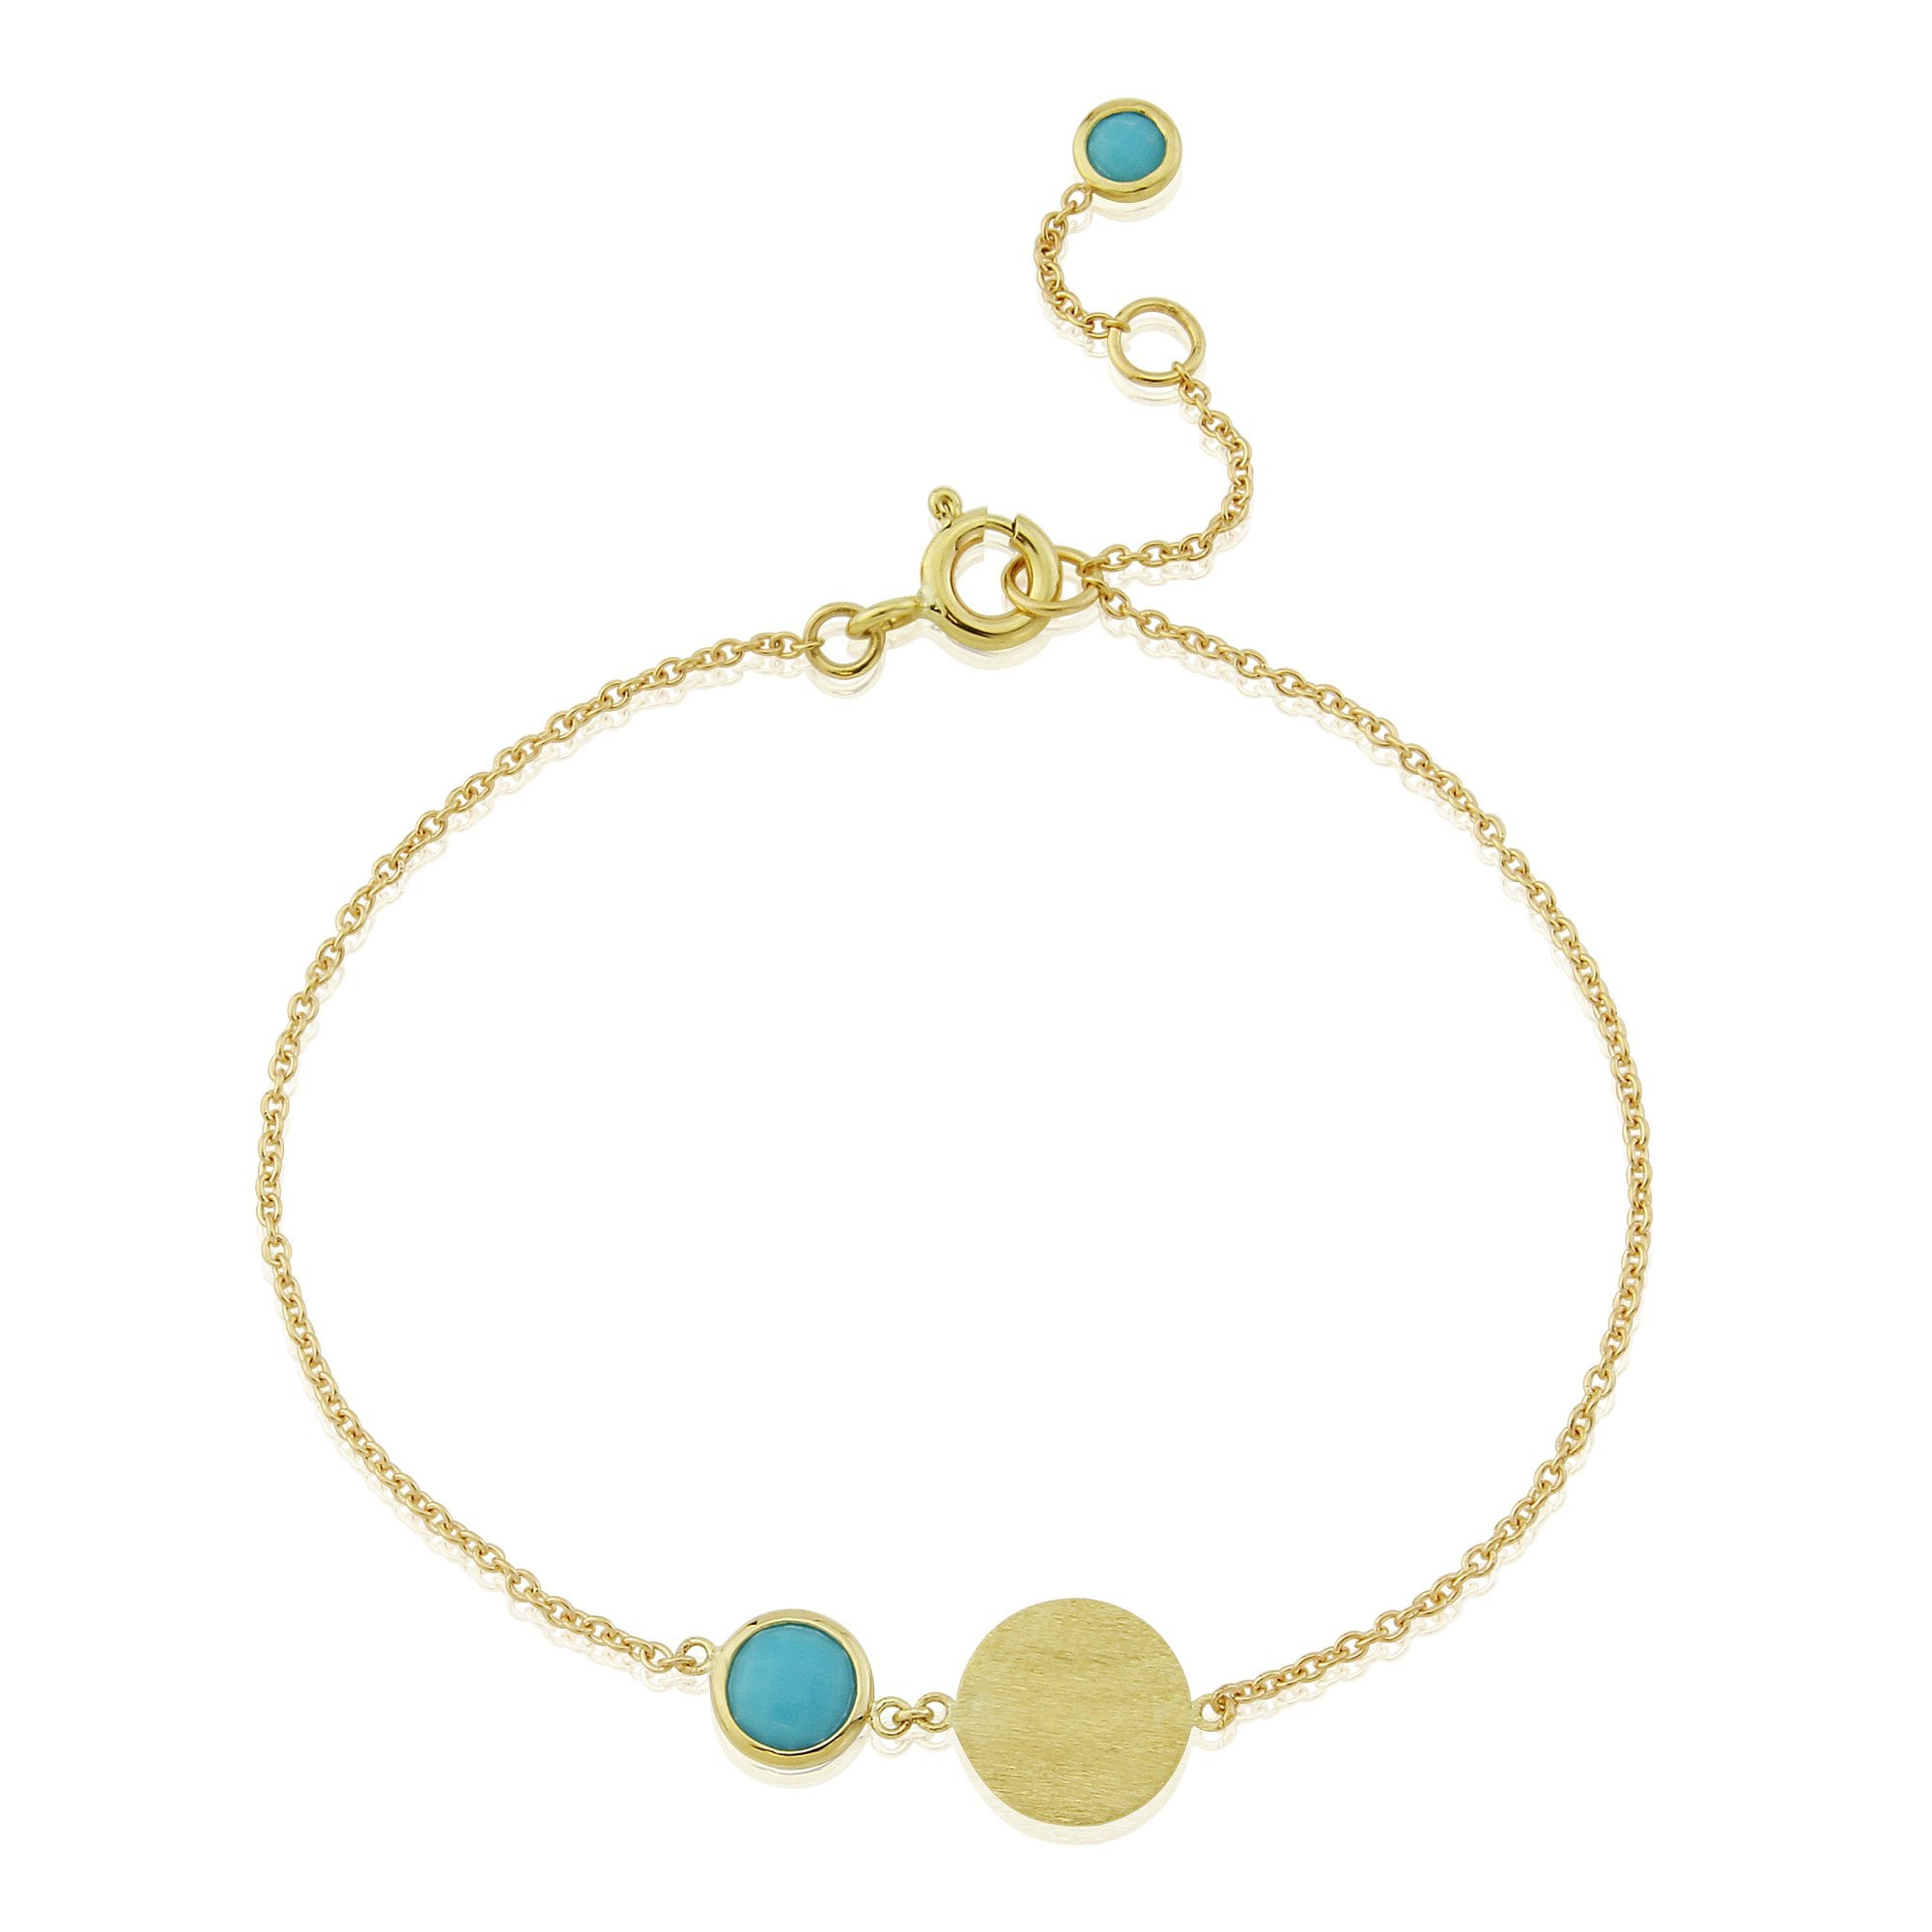 Bali December Birthstone Bracelet Turquoise-AUREE JEWELLERY-HOUSE of BOTTA